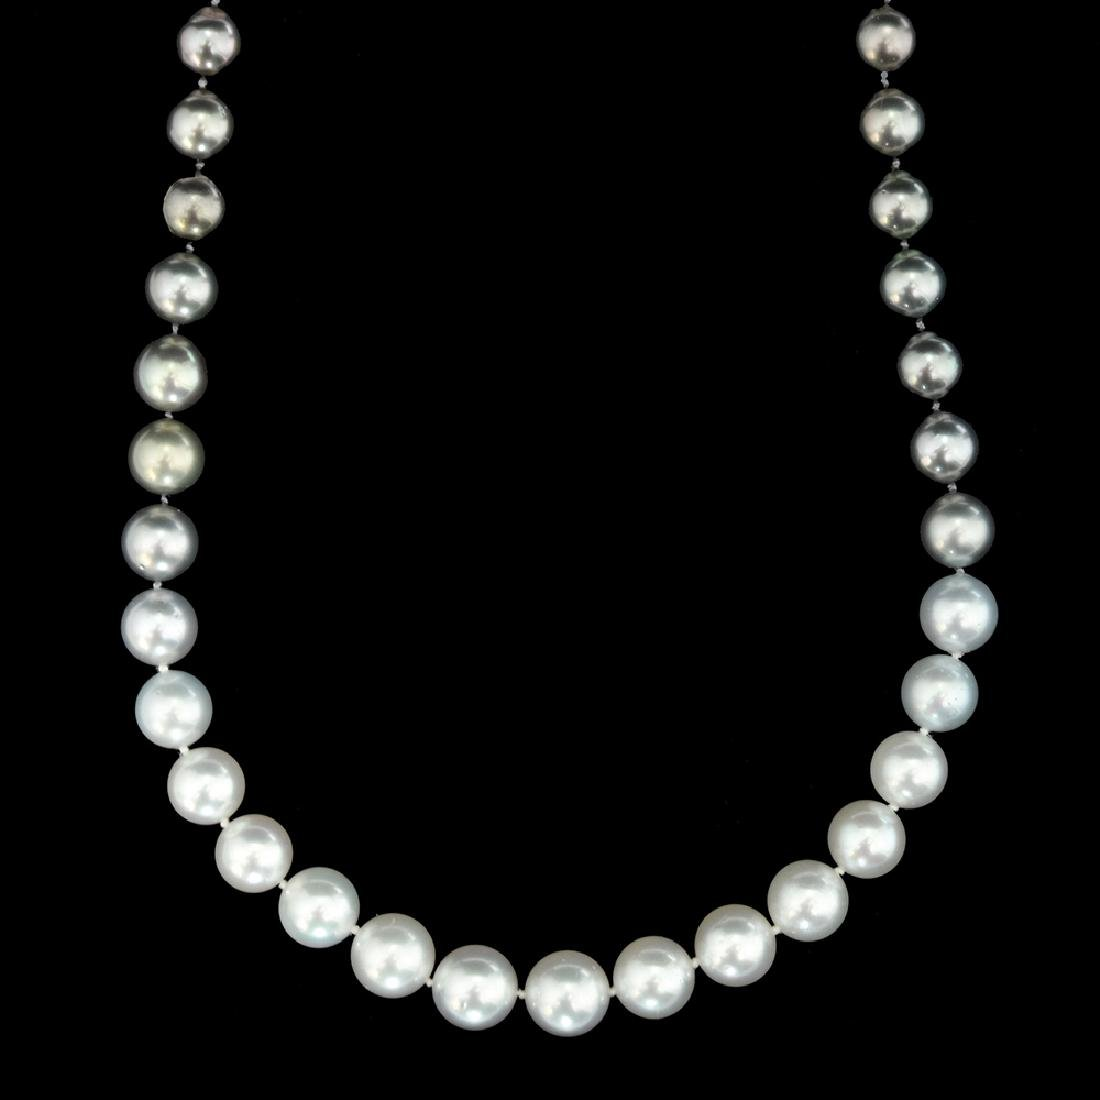 A SOUTHERN SEA PEARL NECKLACE